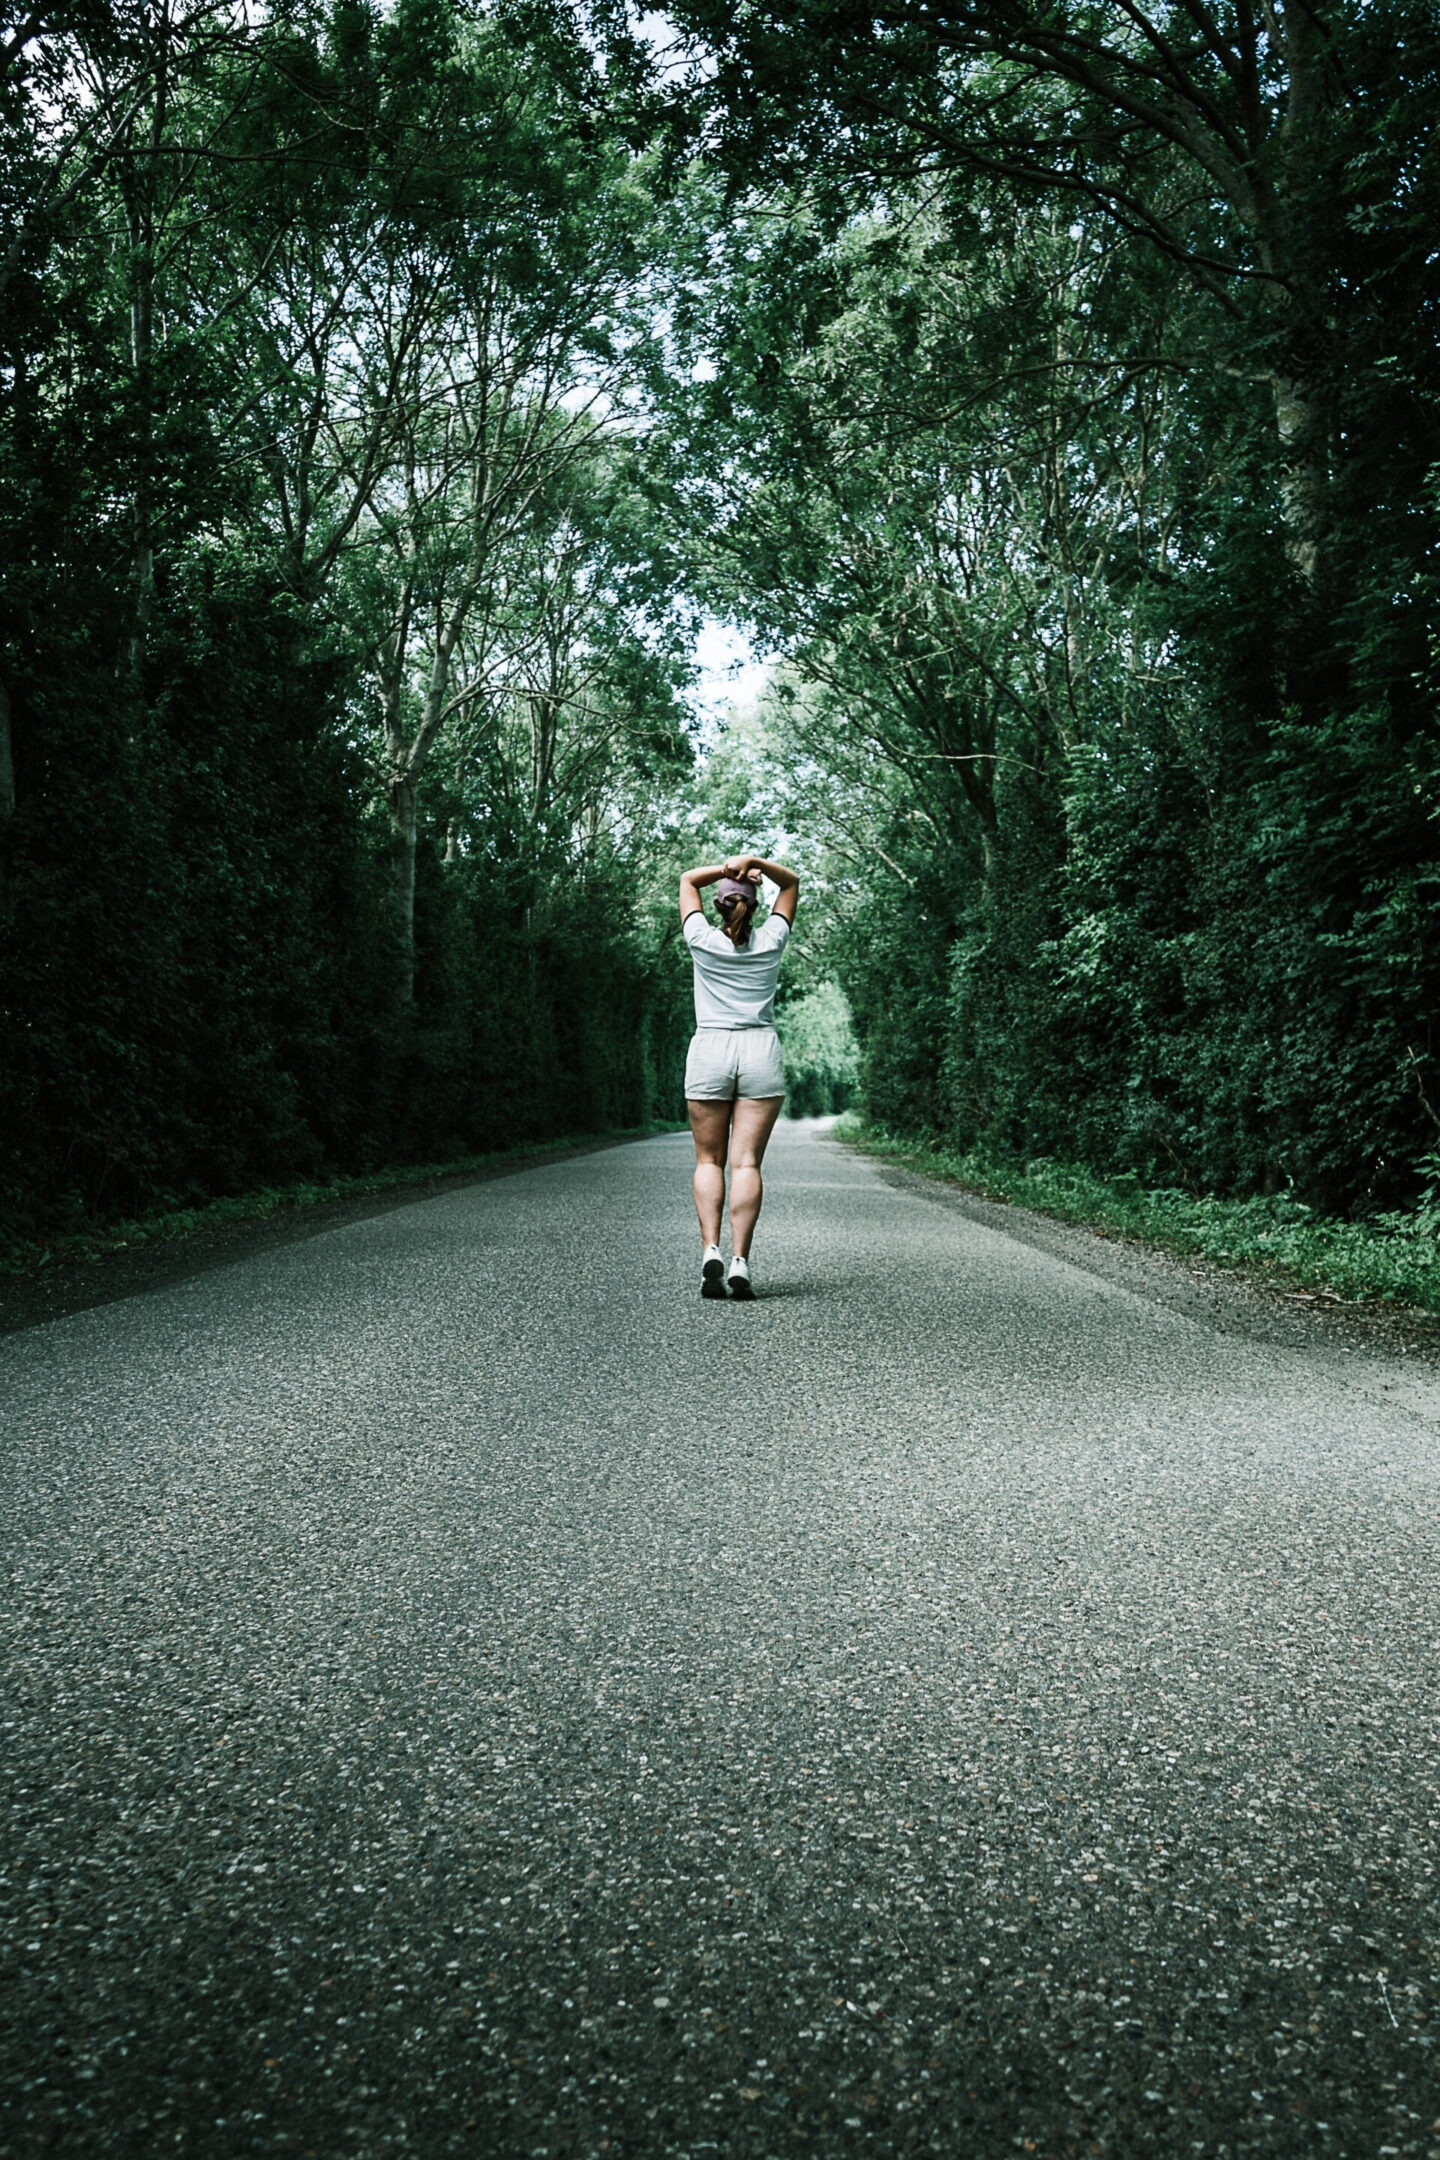 woman running on rural road - exercise